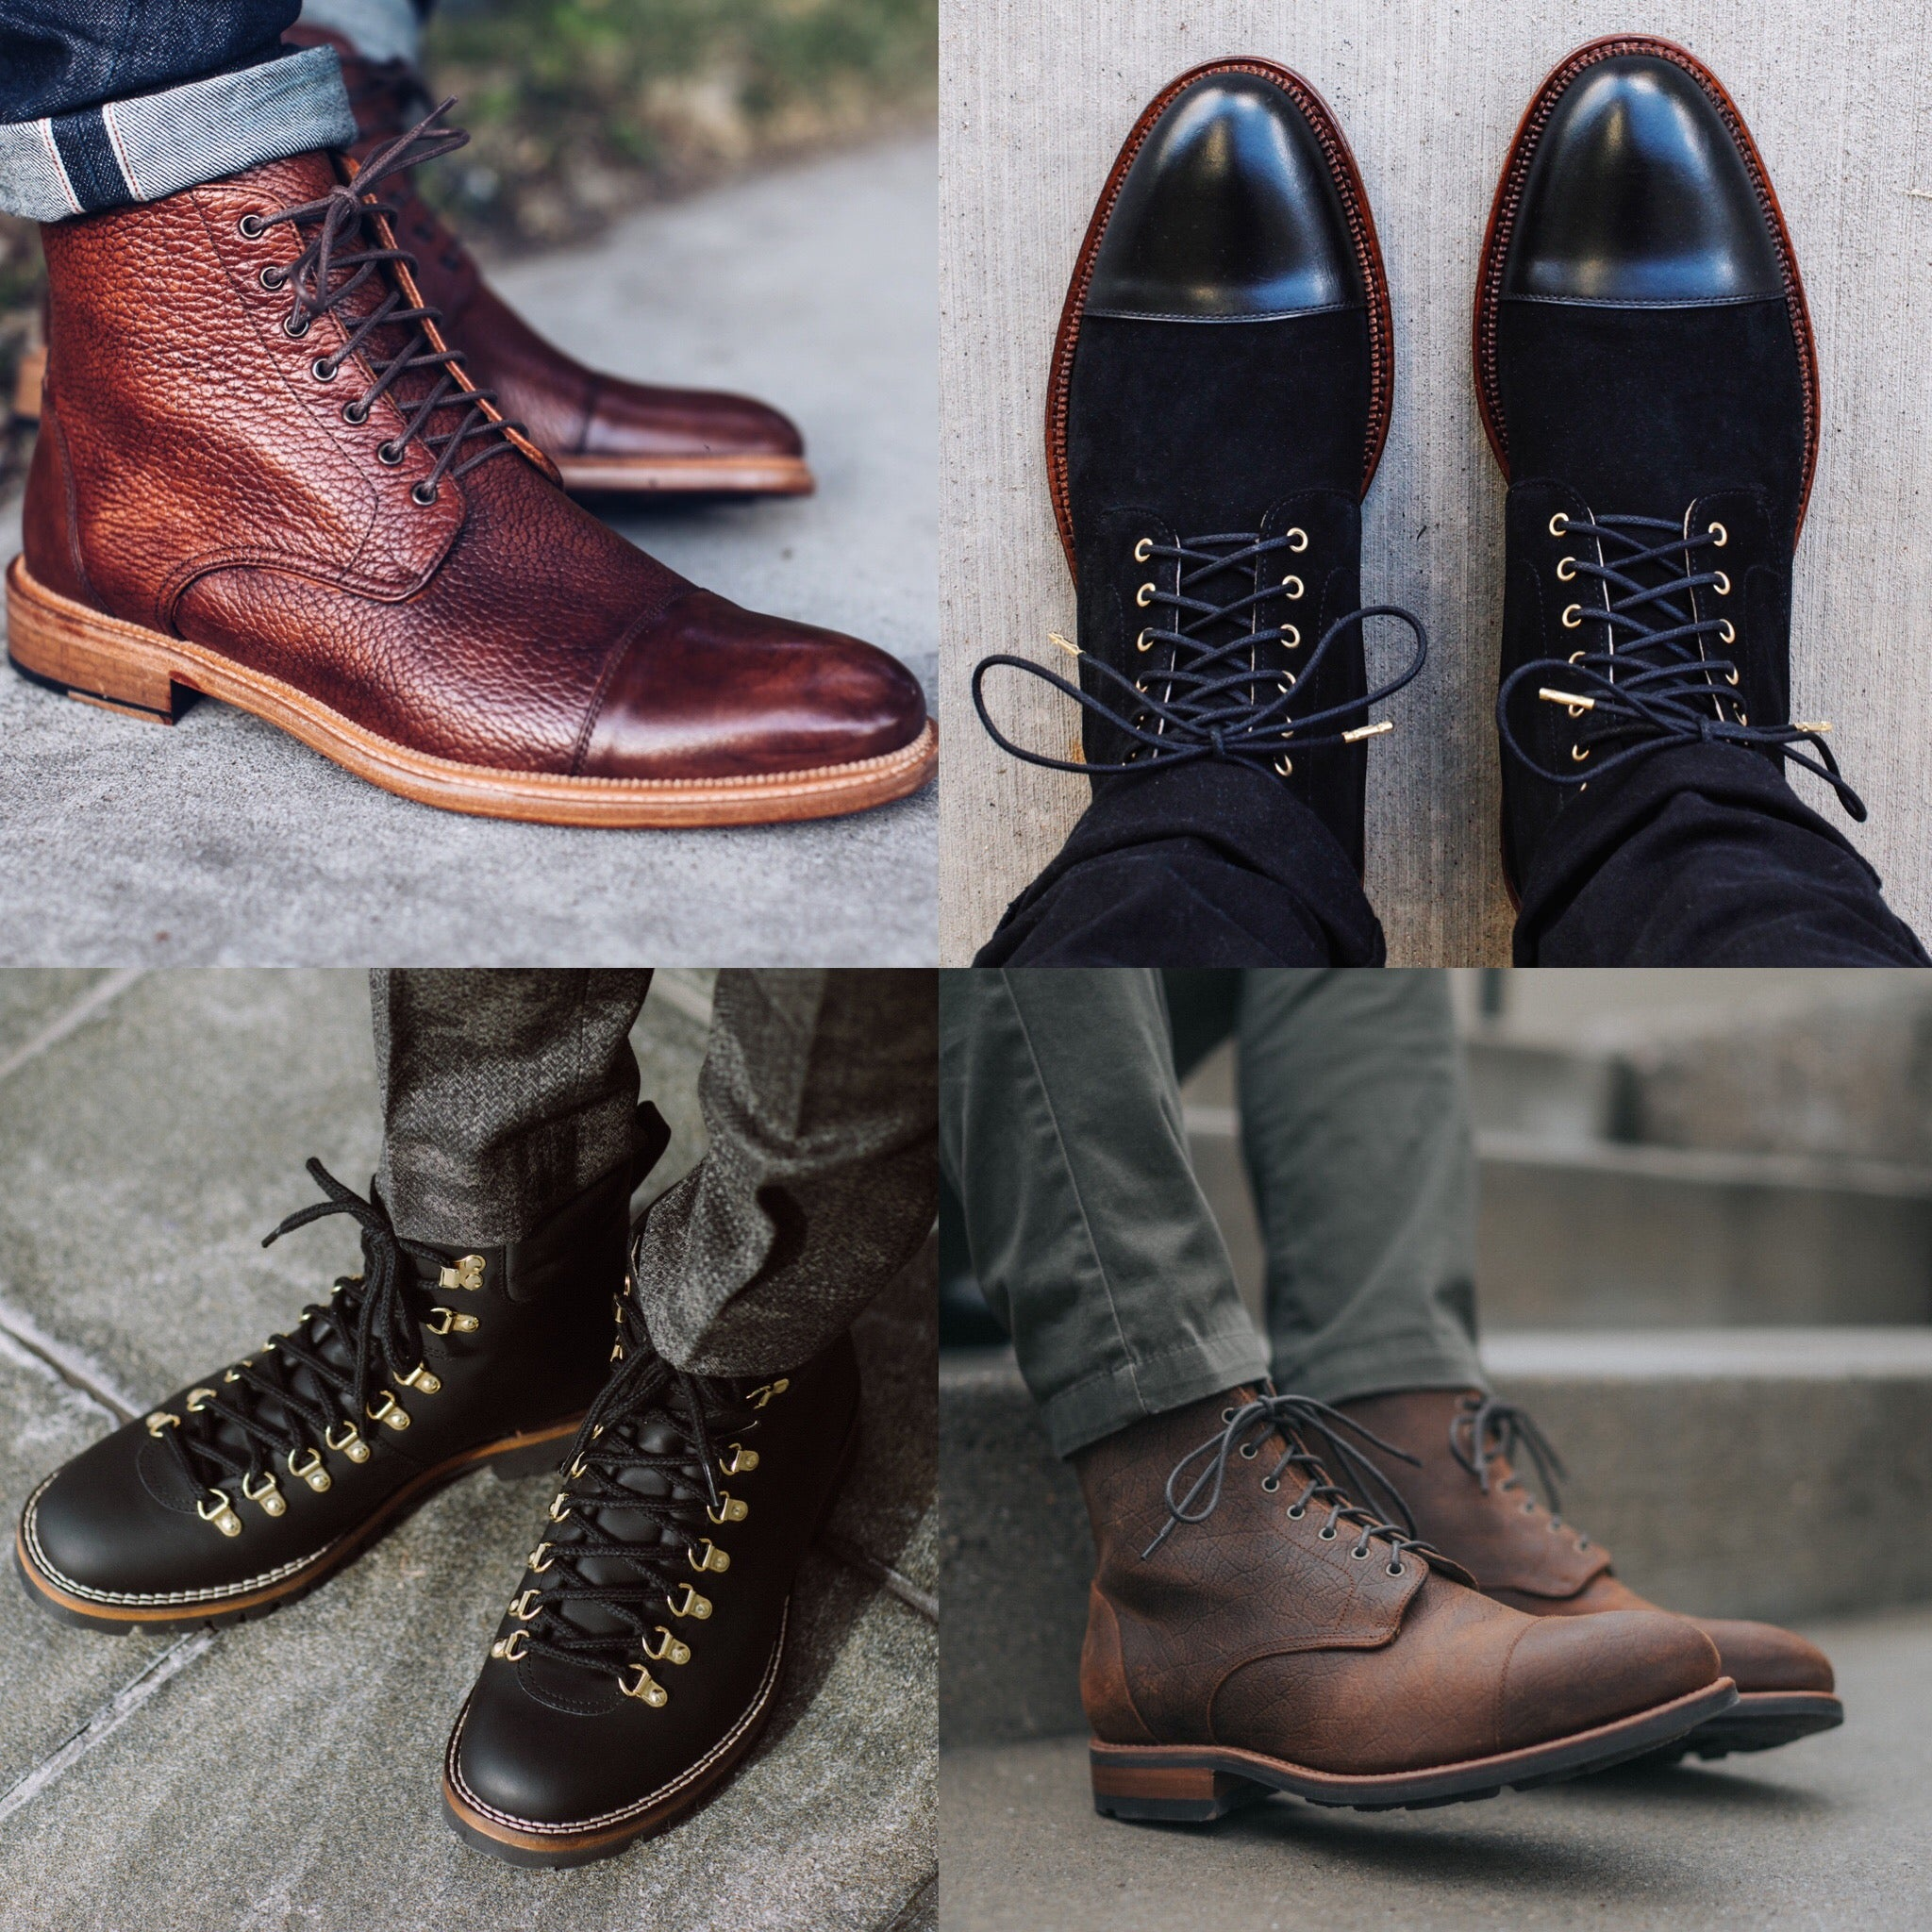 image of four boots: rome brown, troy black, viking midnight, dragon rust